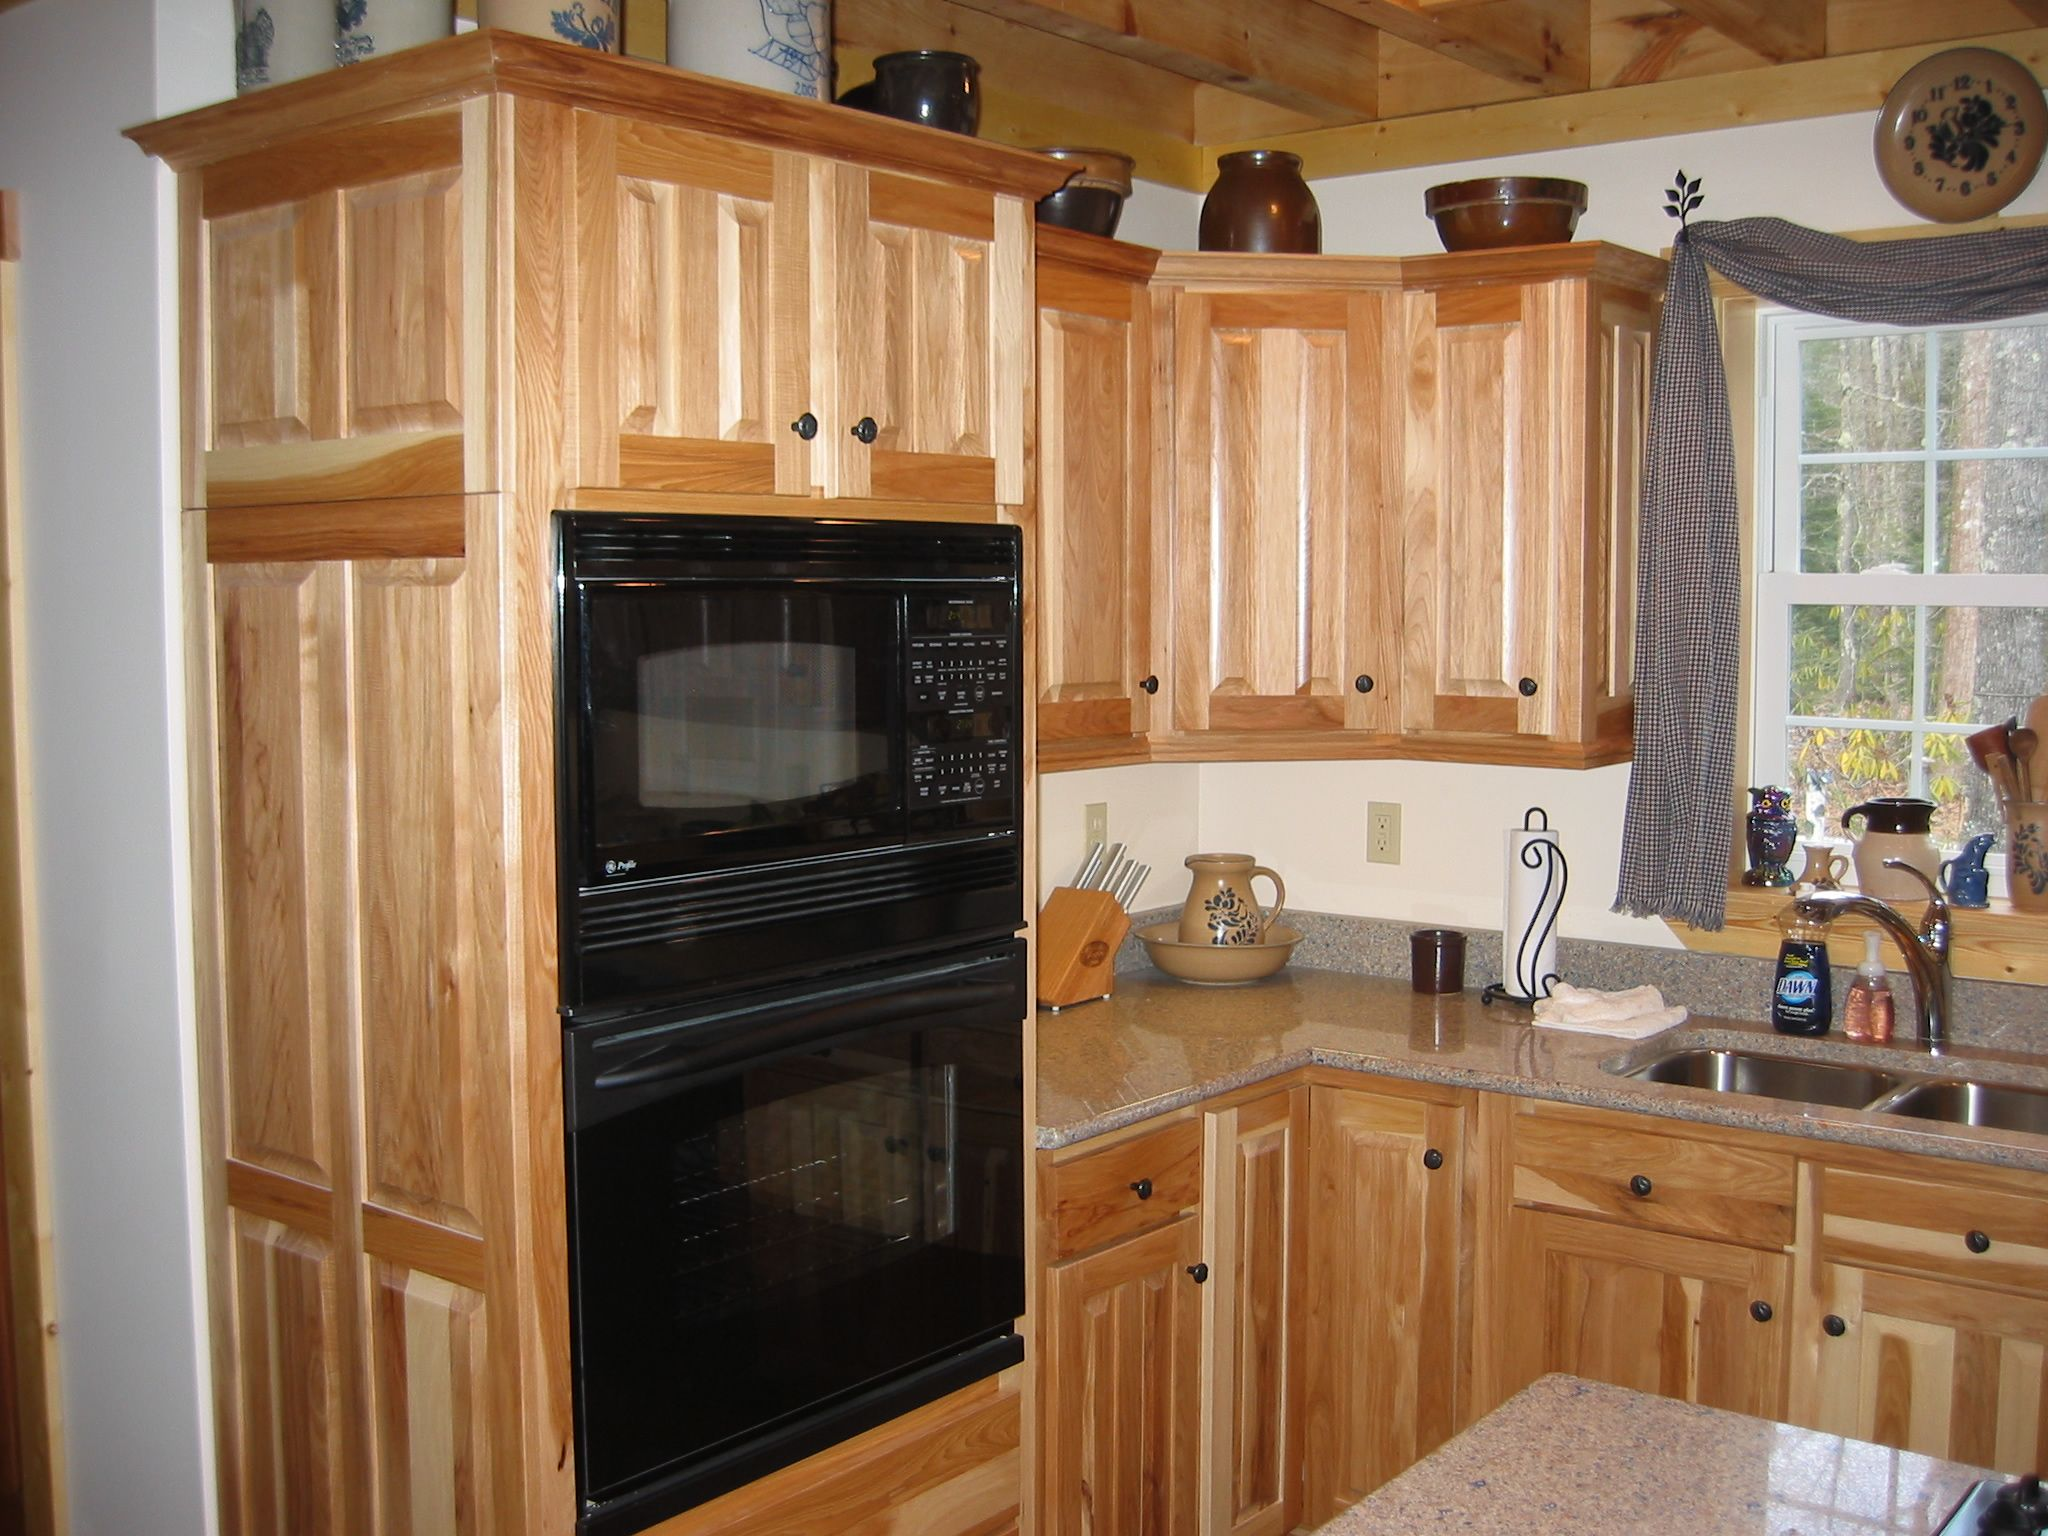 Hickory Kitchen Cabinet Have Some Benefits Since They Are Strong American  Hardwood And They Usually Used